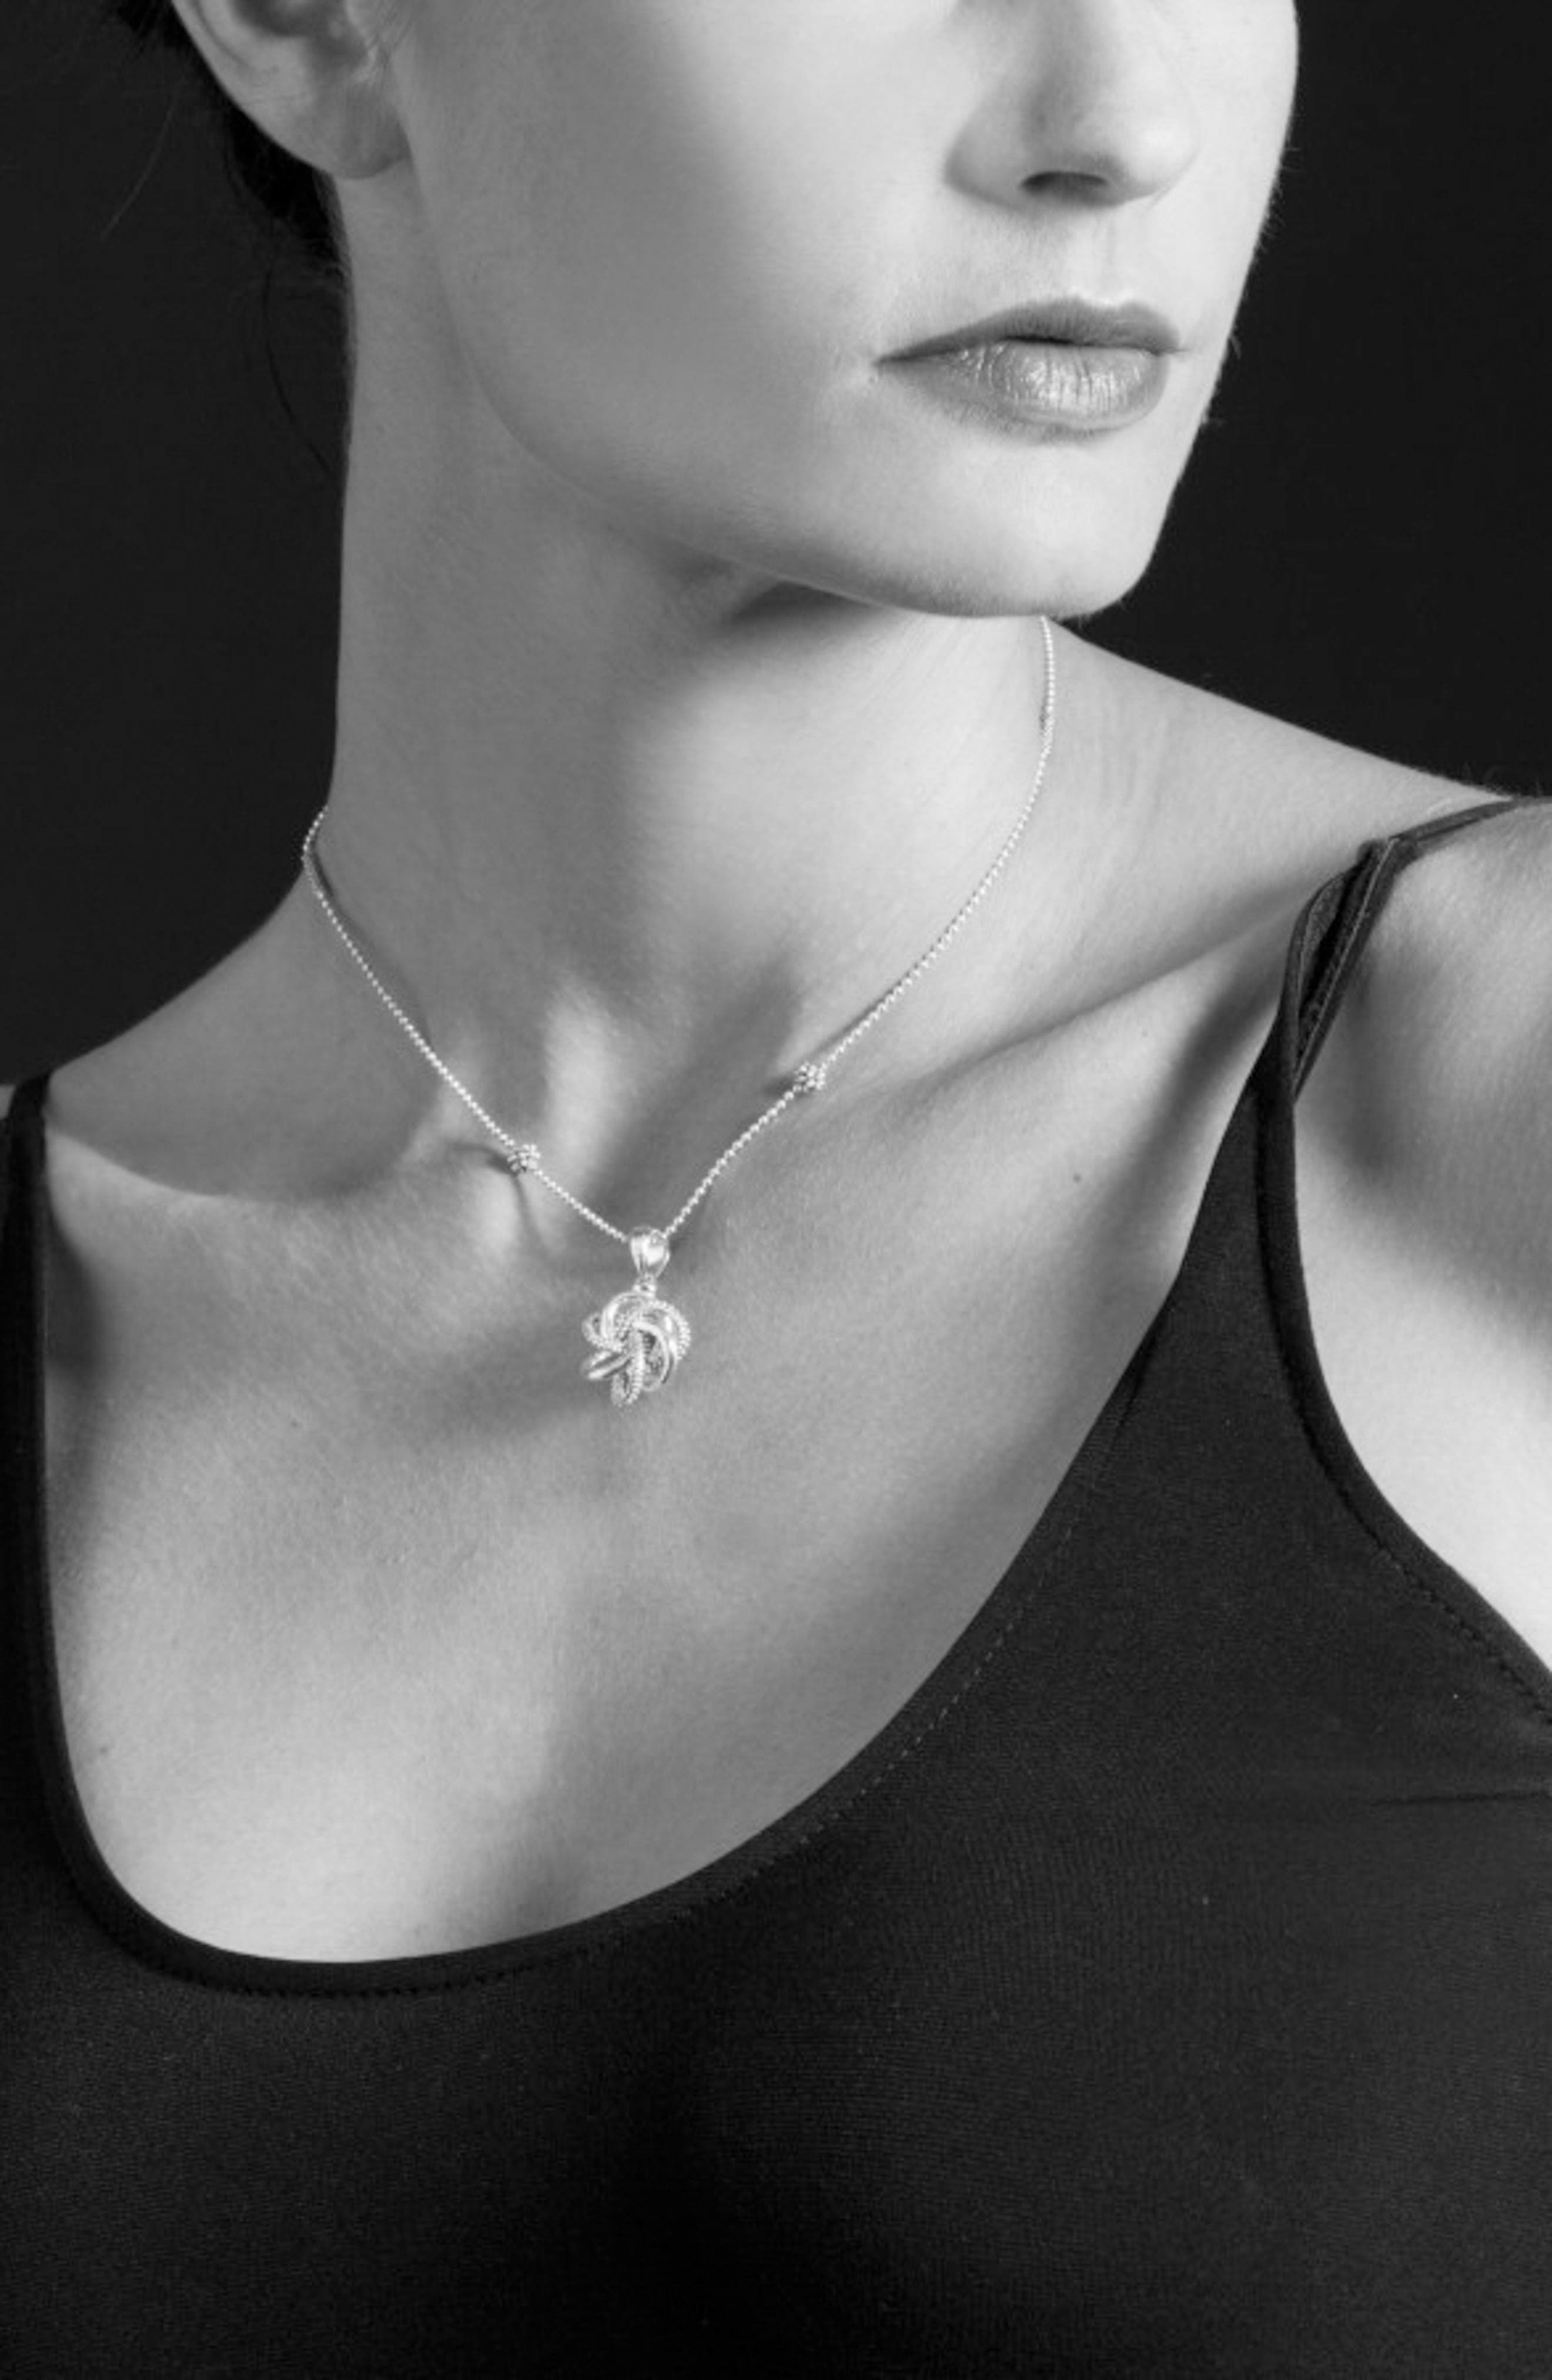 'Love Knot' Pendant Necklace,                             Alternate thumbnail 2, color,                             STERLING SILVER